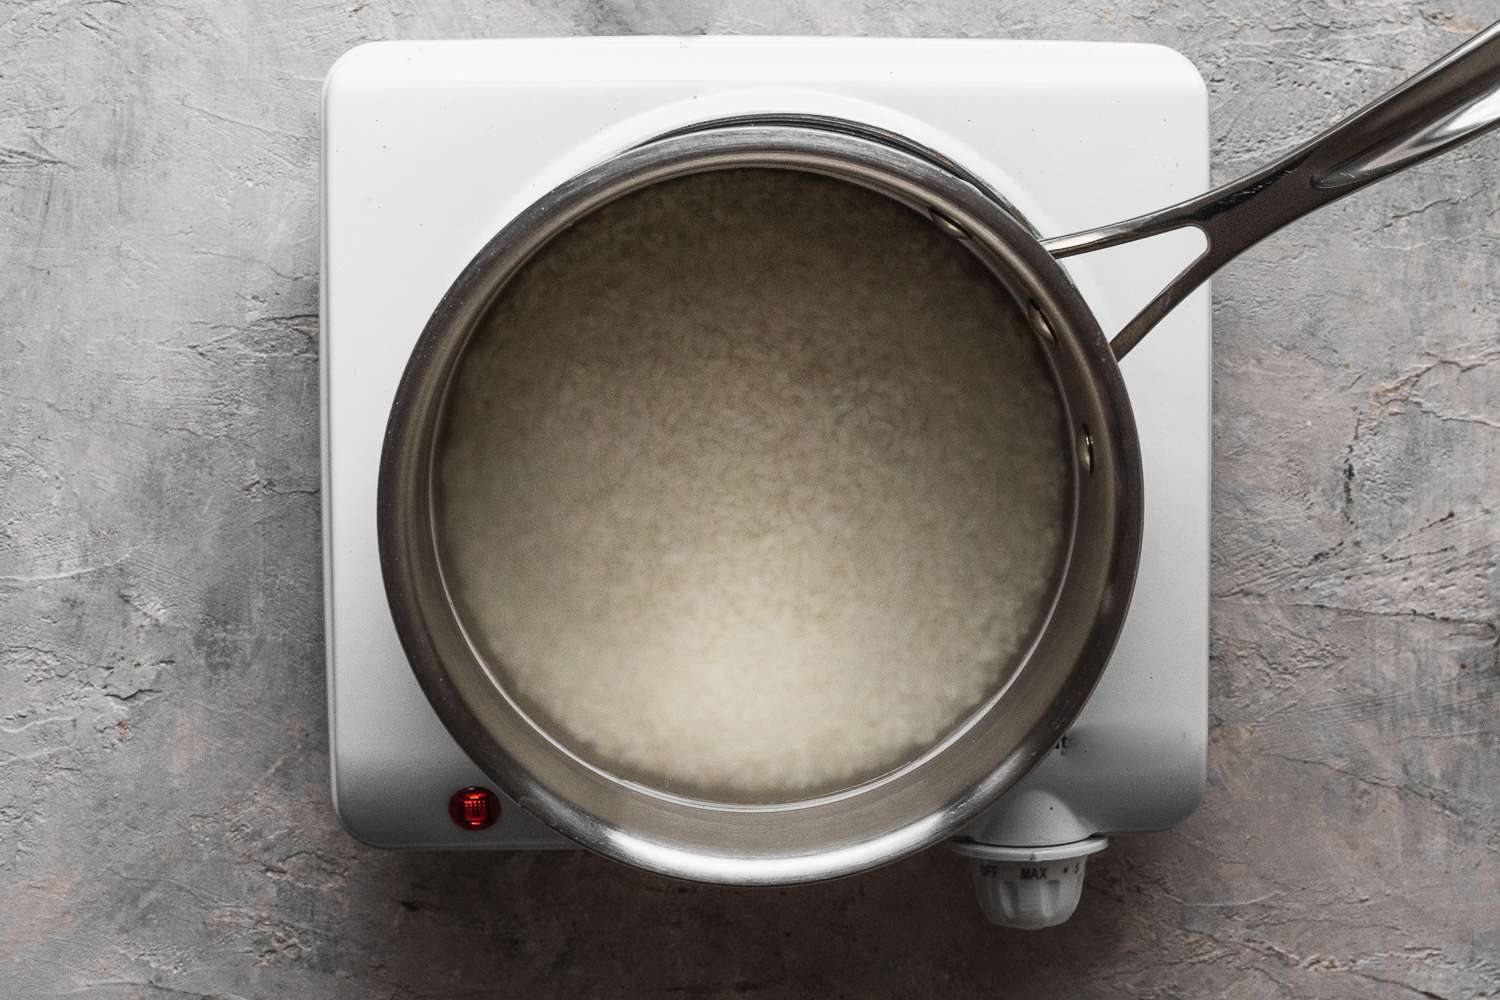 rice and water in a saucepan